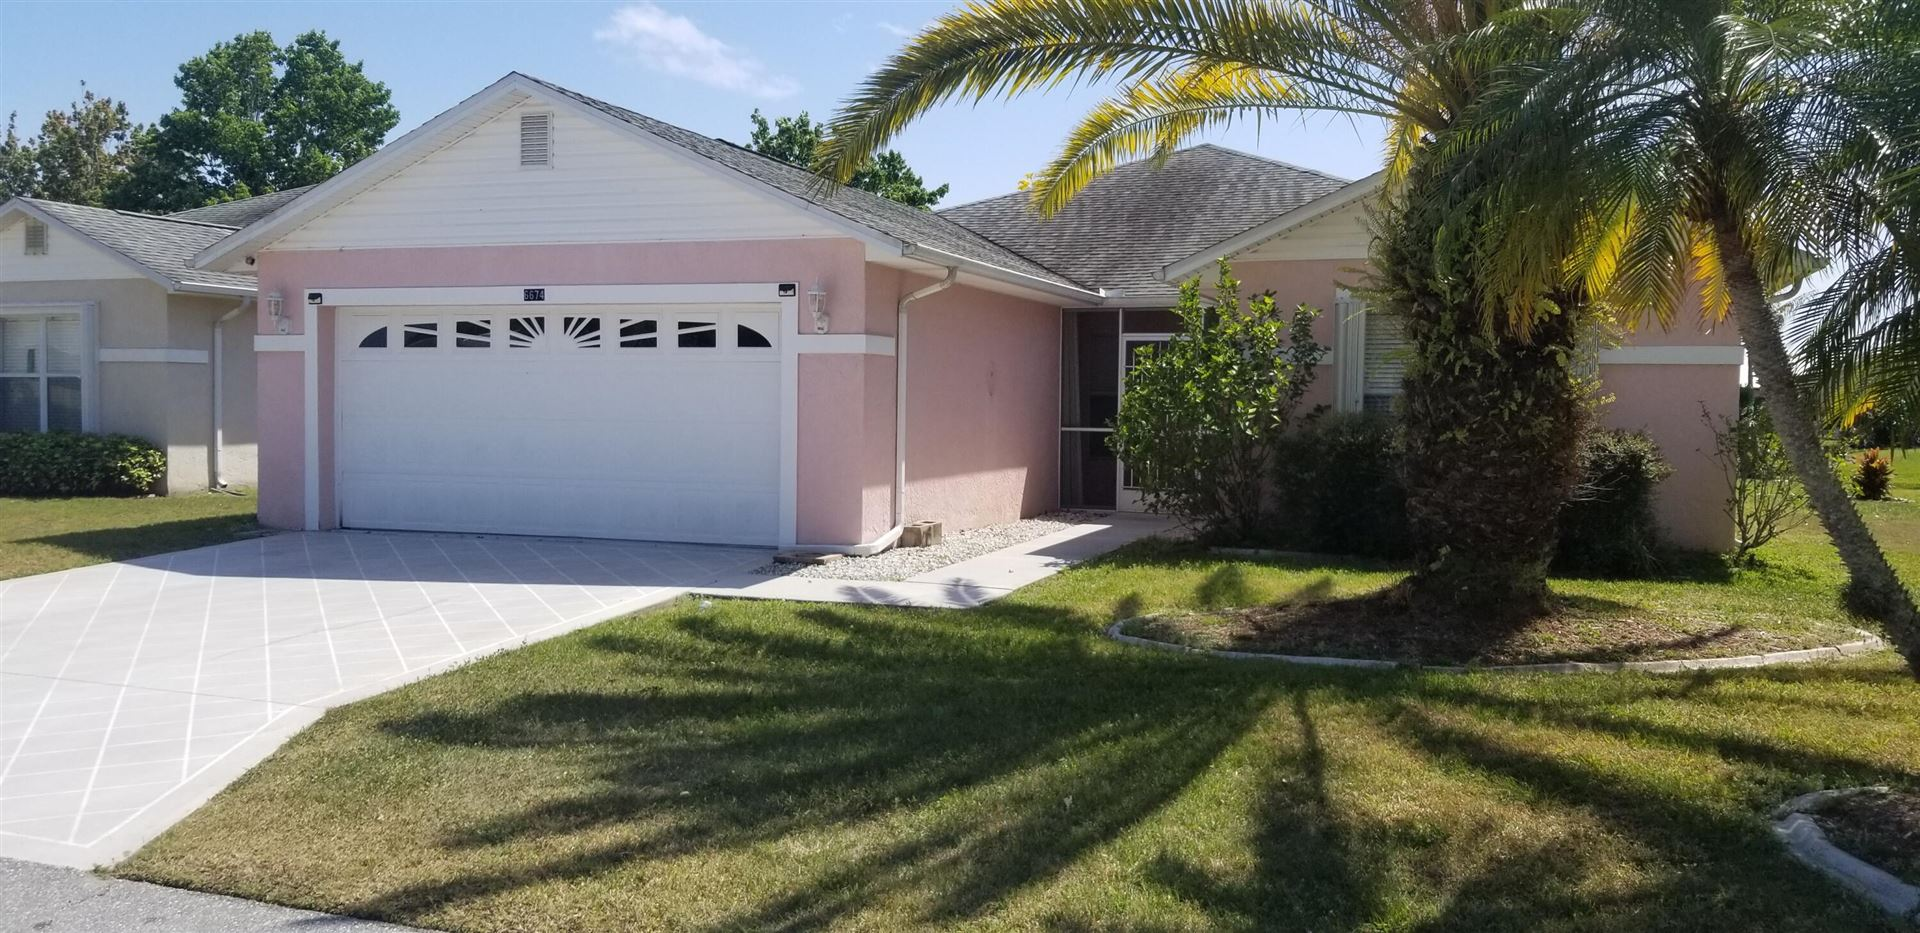 6674 Picante Circle, Fort Pierce, FL 34951 - #: RX-10706102